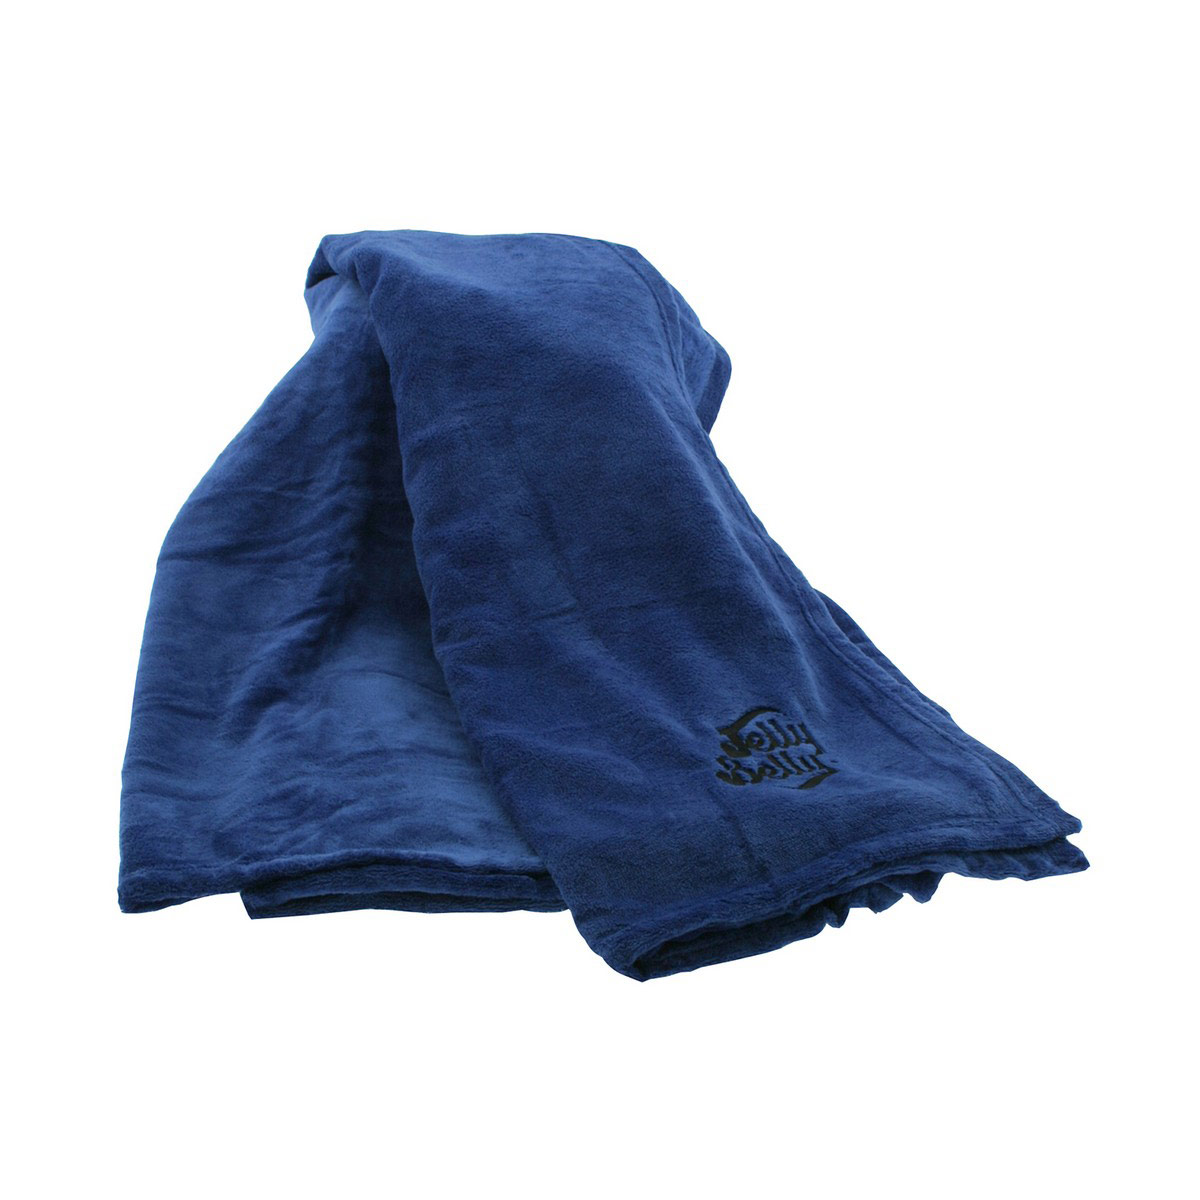 Jelly Belly Blanket Fleece - Blue